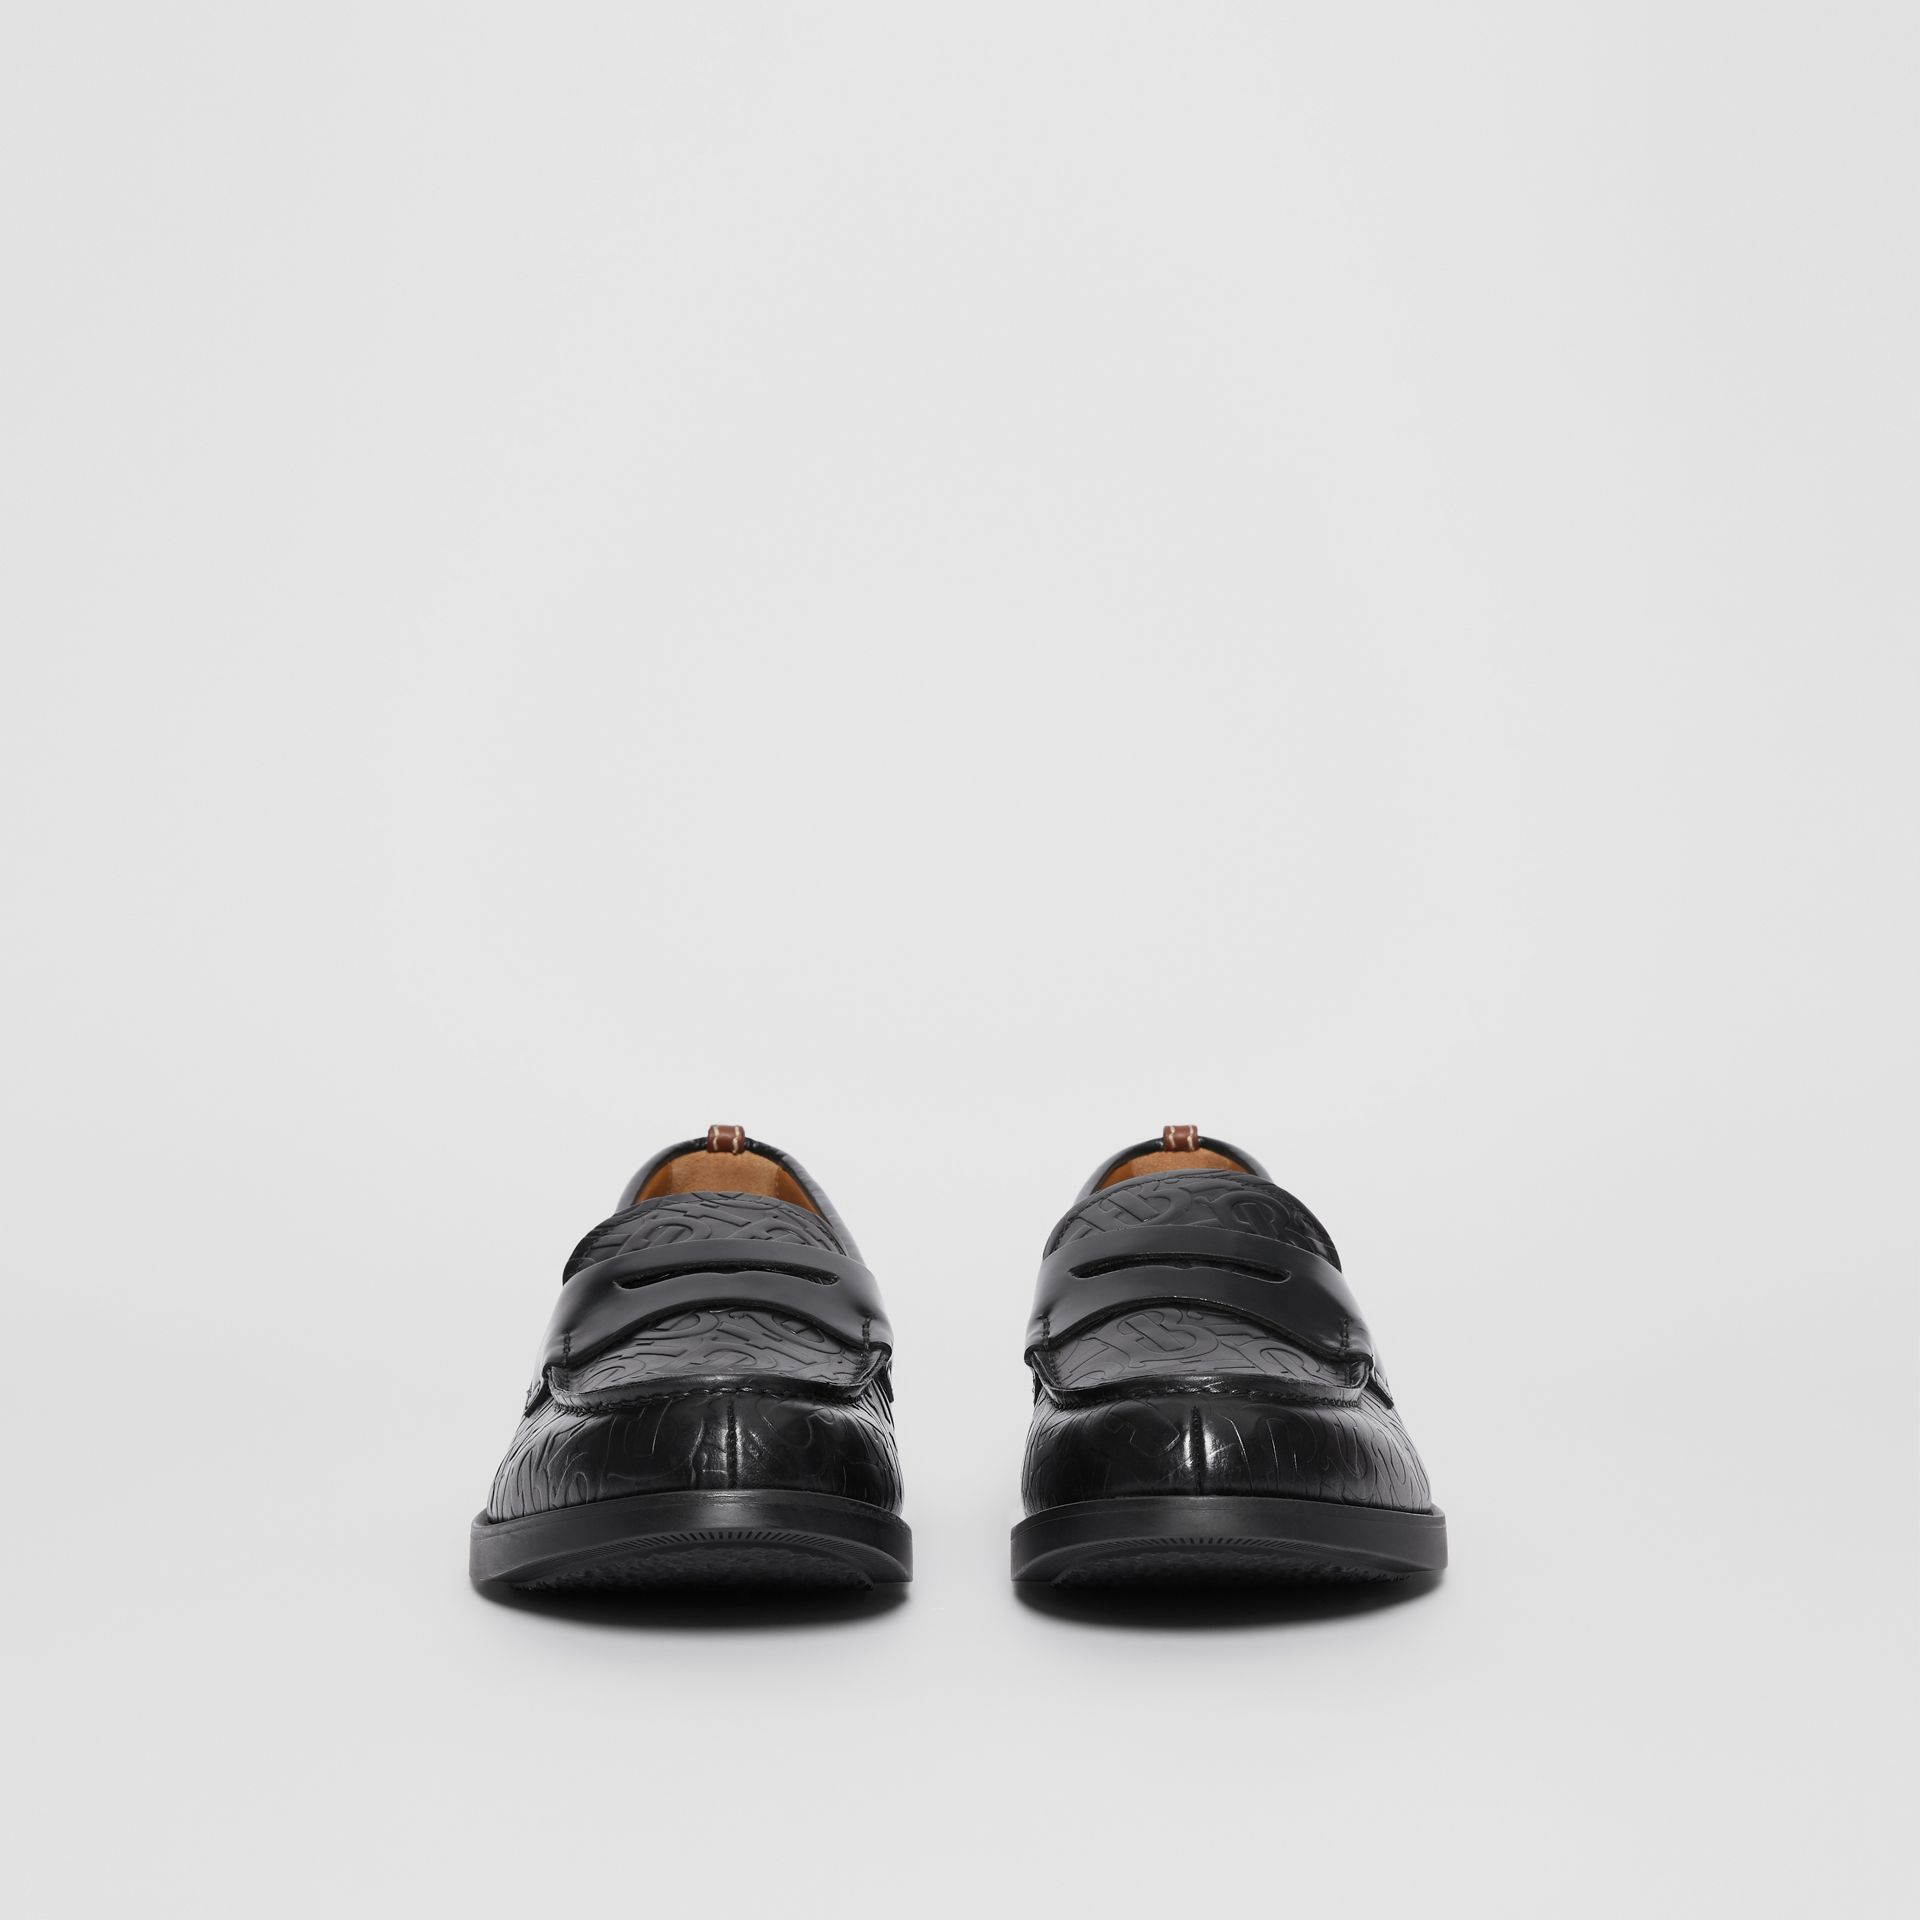 D-ring Detail Monogram Leather Loafers in Black - Men | Burberry Australia - gallery image 2